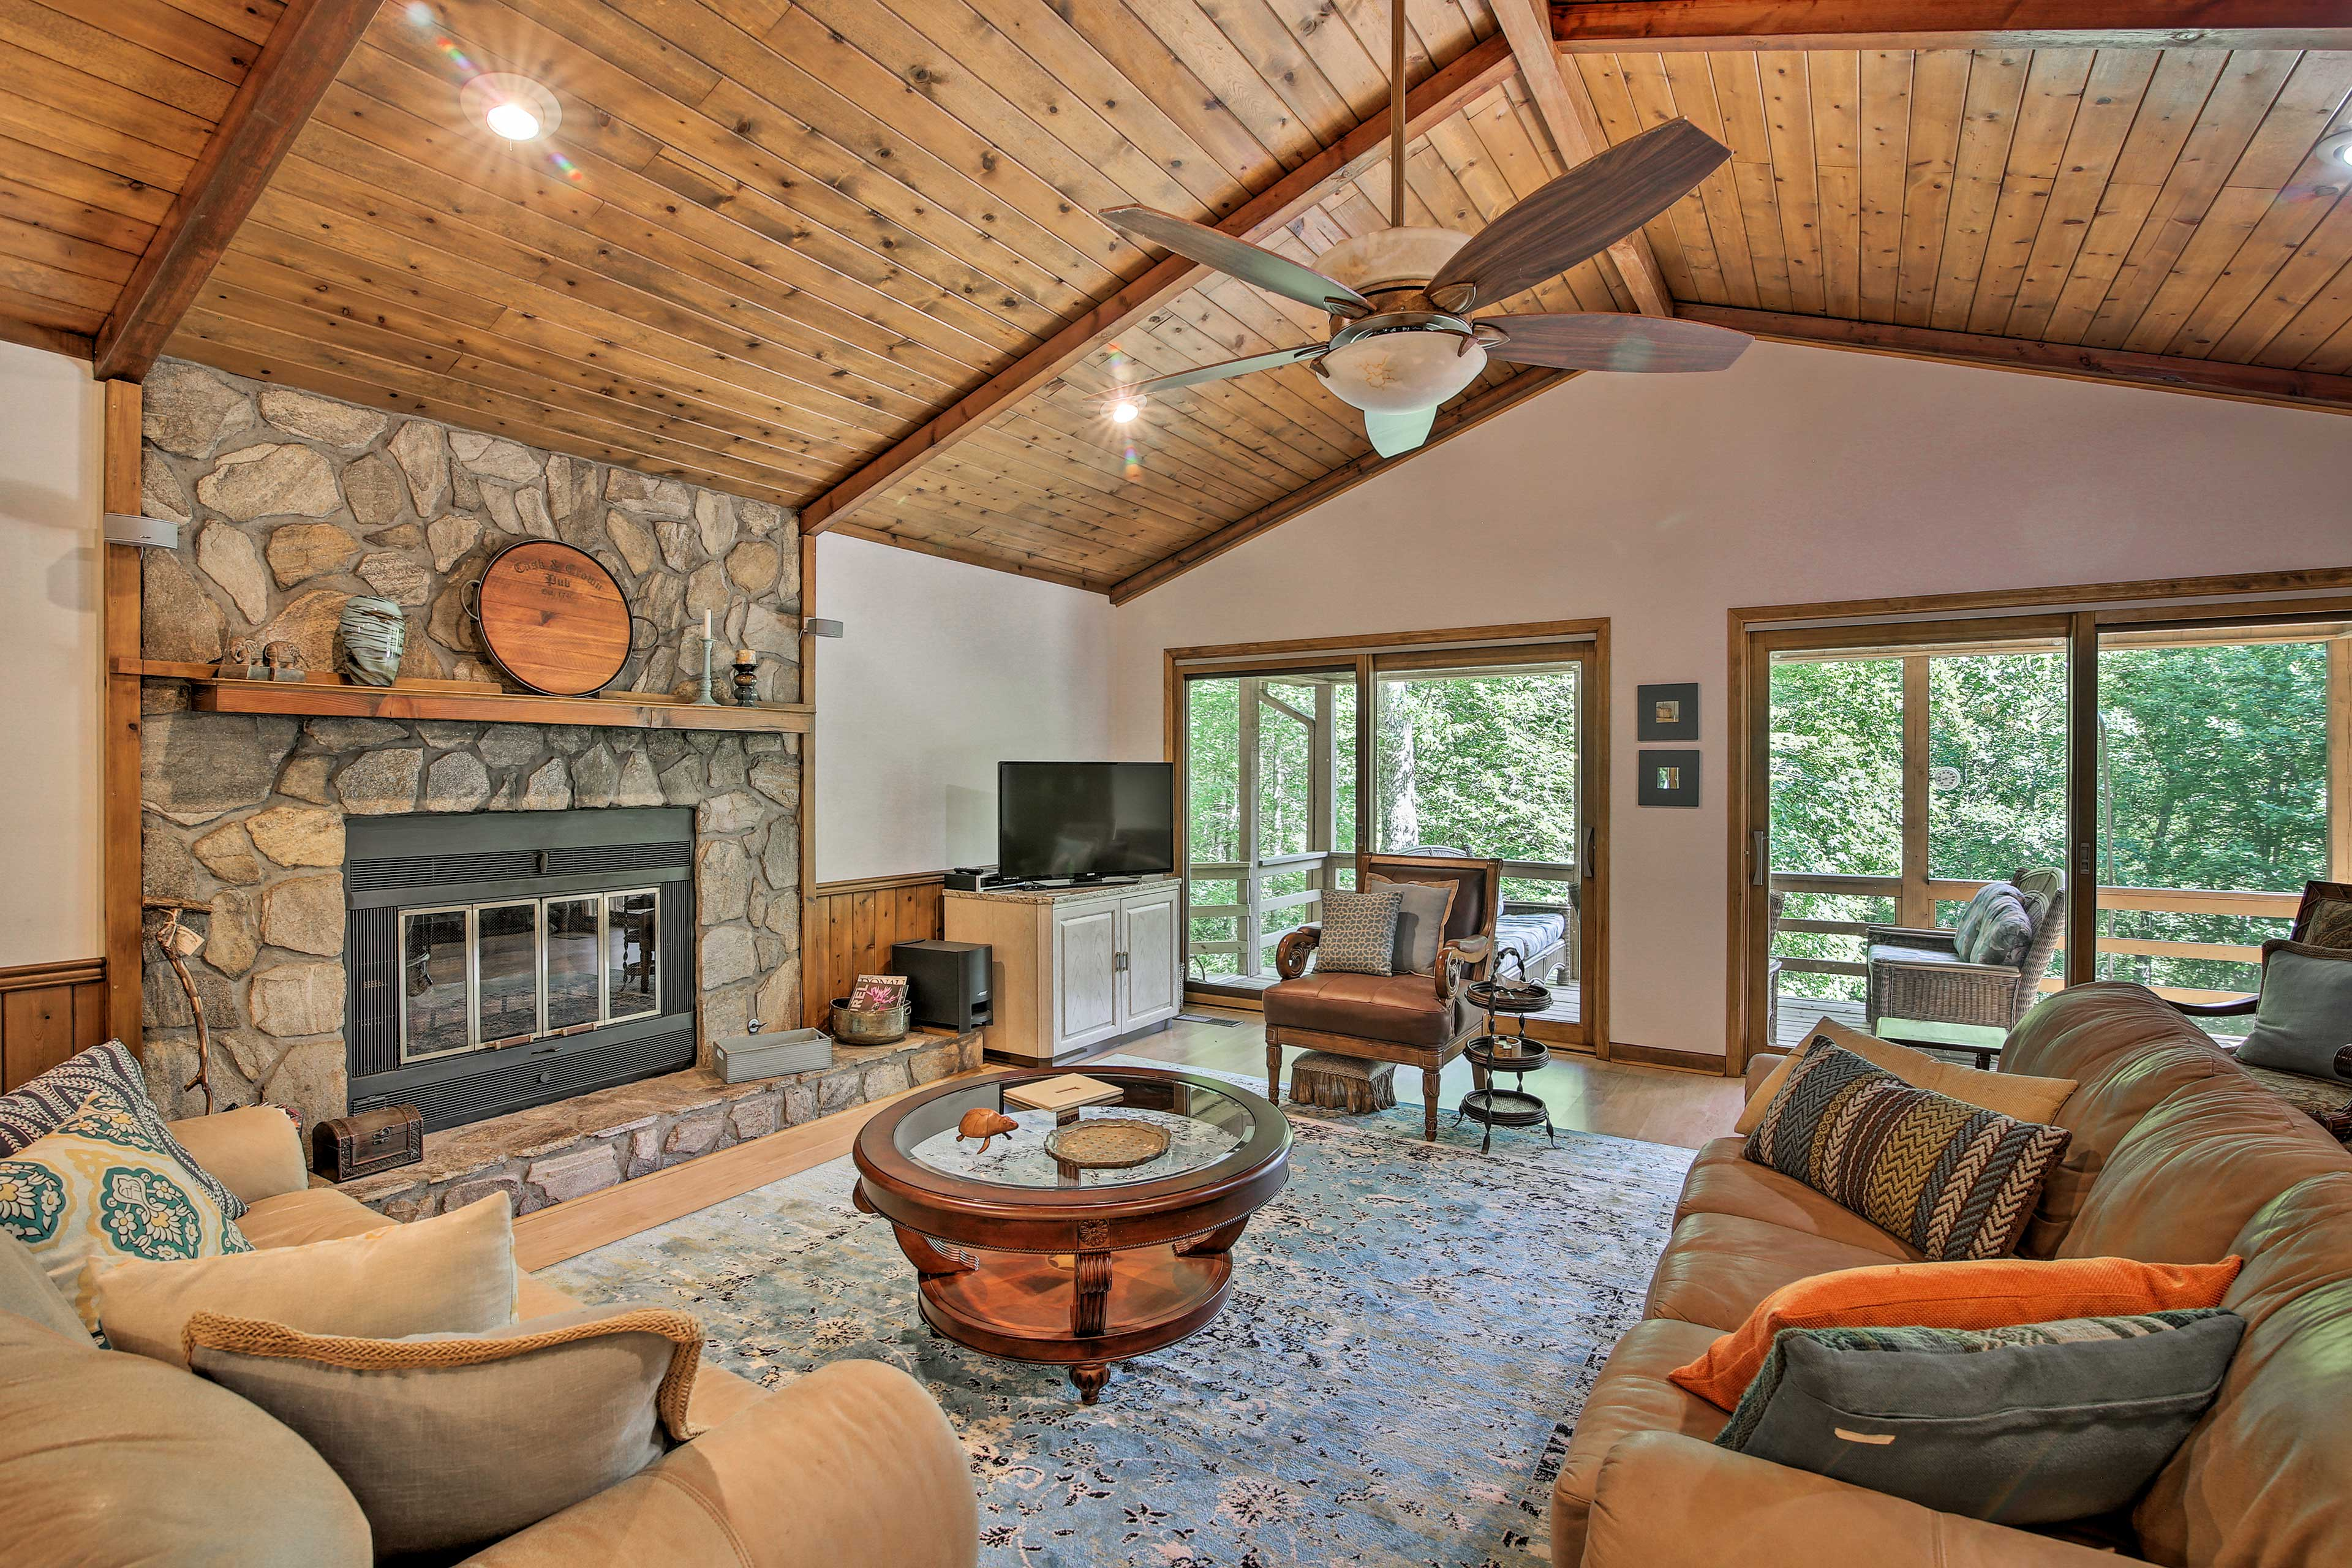 Vaulted ceilings, stunning views, and a stone fireplace highlight the great room